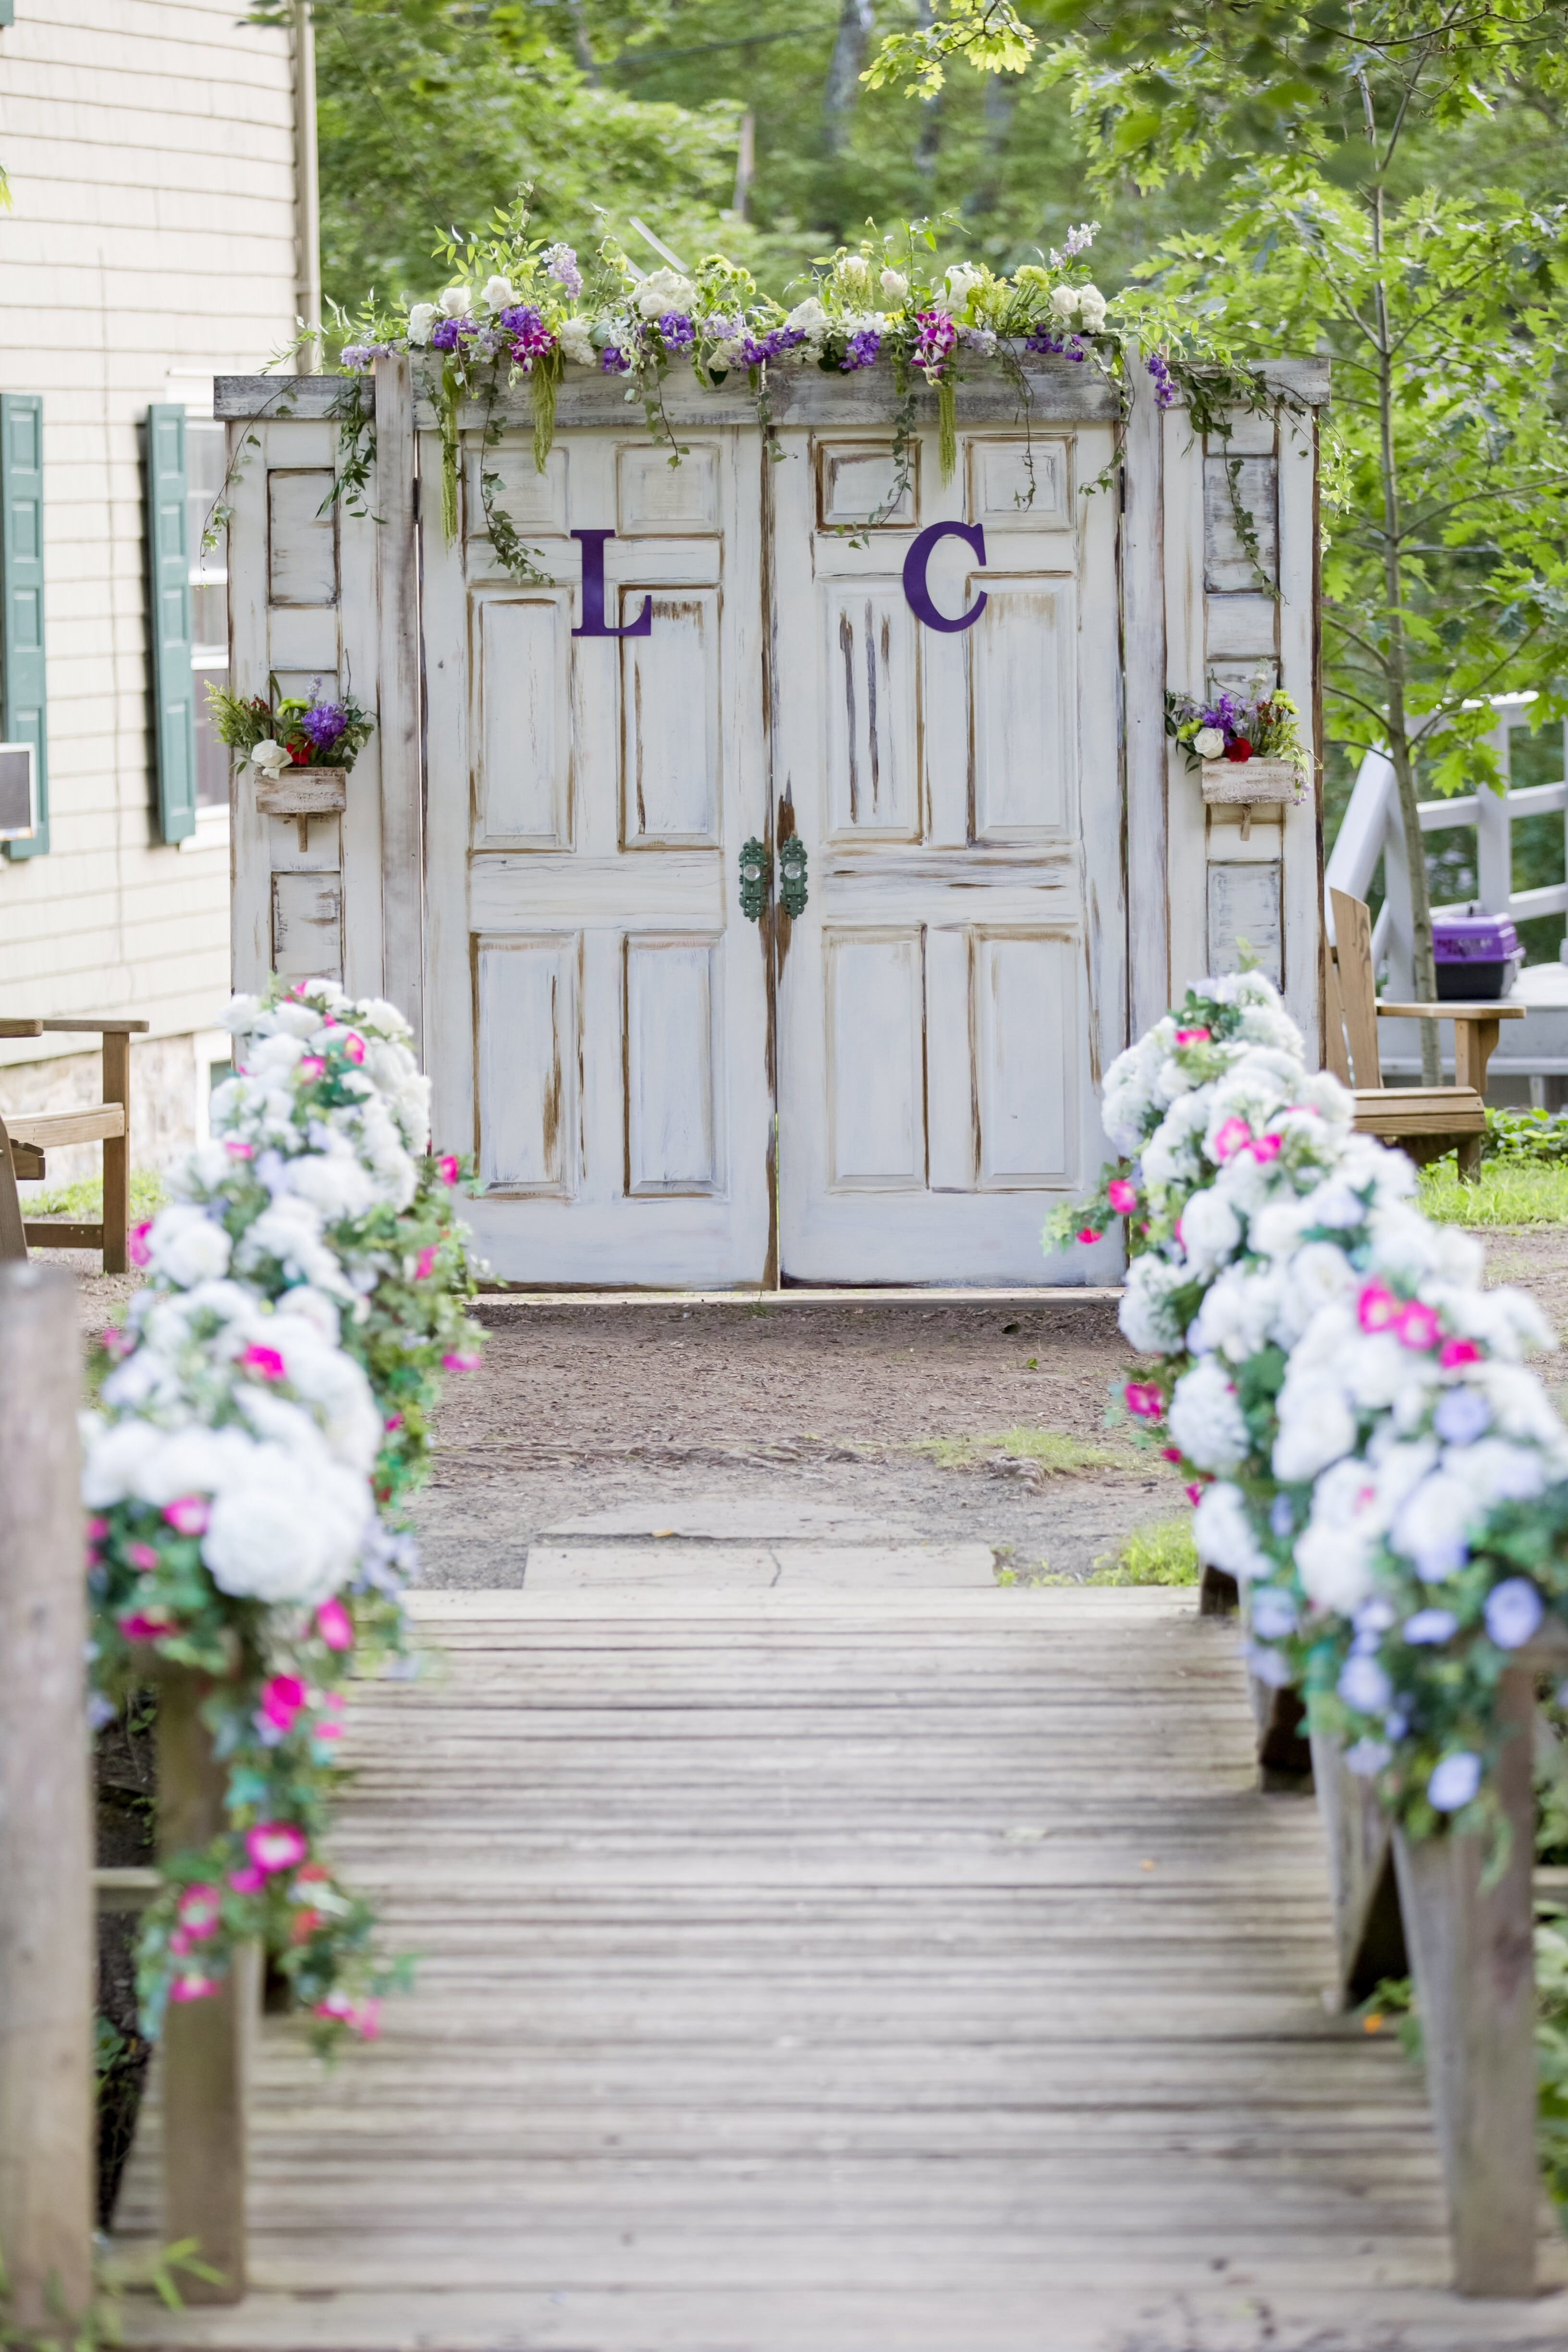 Awesome Outdoor Country Wedding Ideas – Wedding